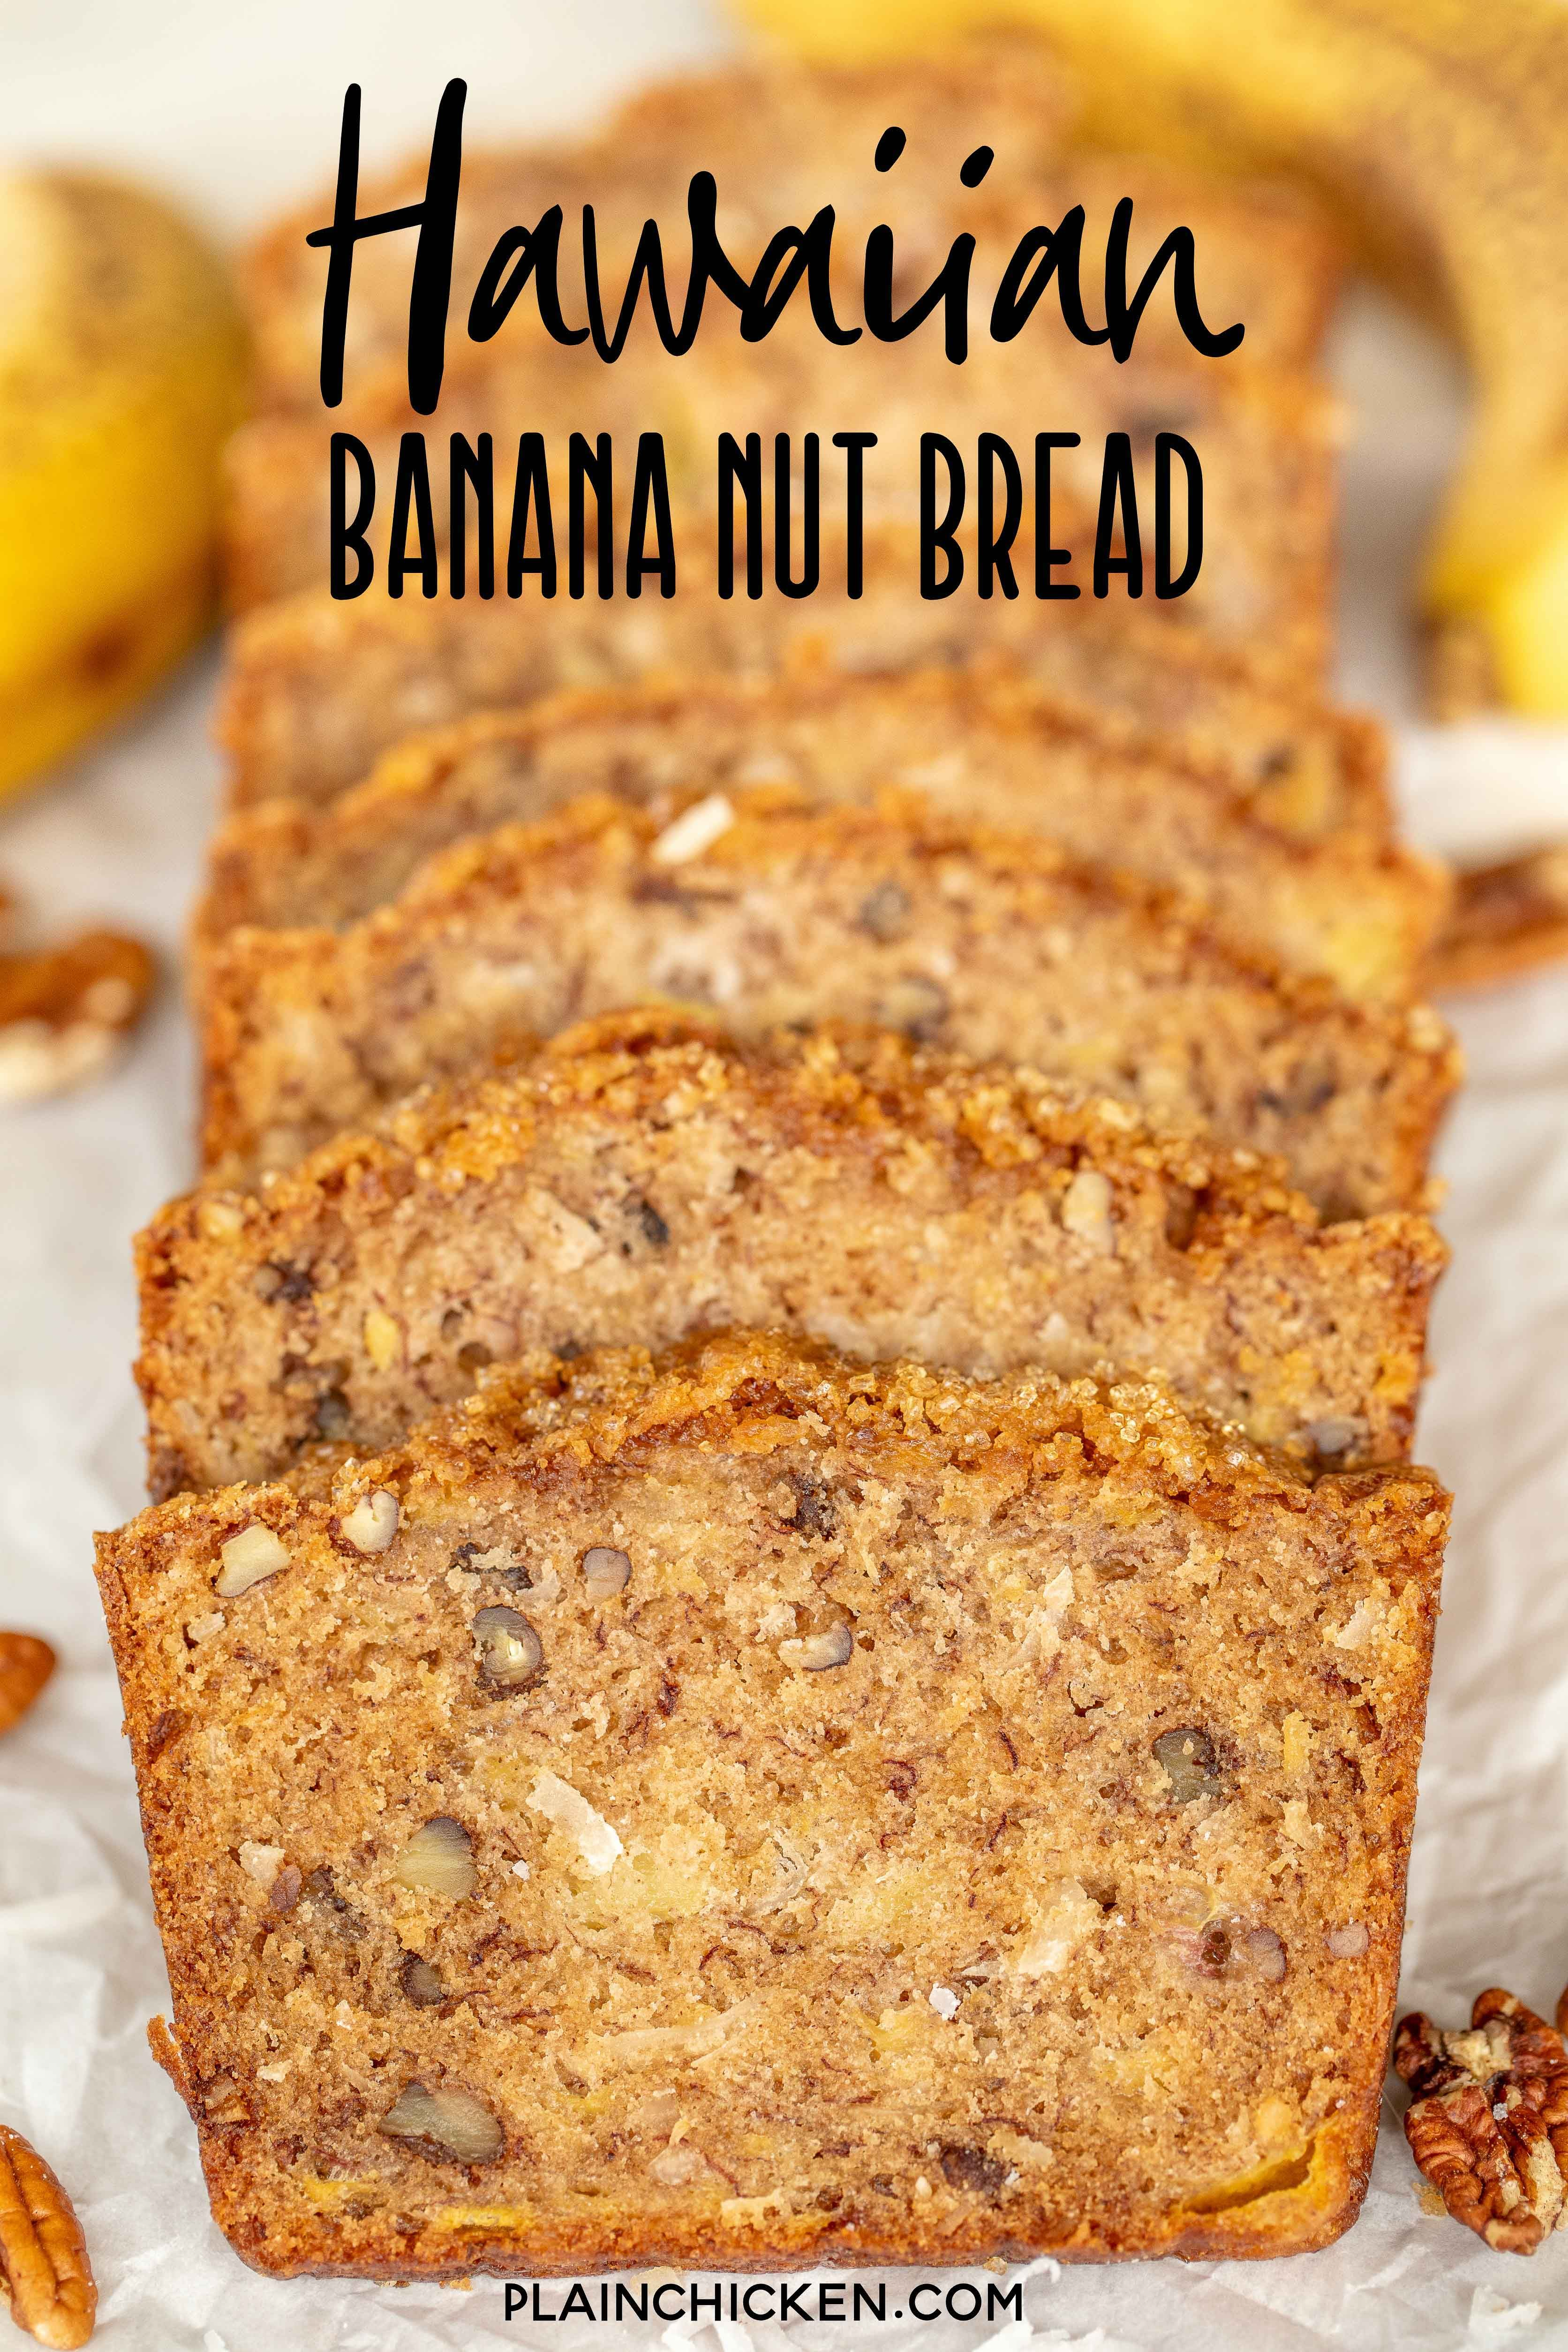 Hawaiian Banana Nut Bread Loaded With Pineapple And Coconut Seriously Delicious Can M In 2020 Banana Nut Bread Banana Nut Bread Recipe Hawaiian Banana Bread Recipe